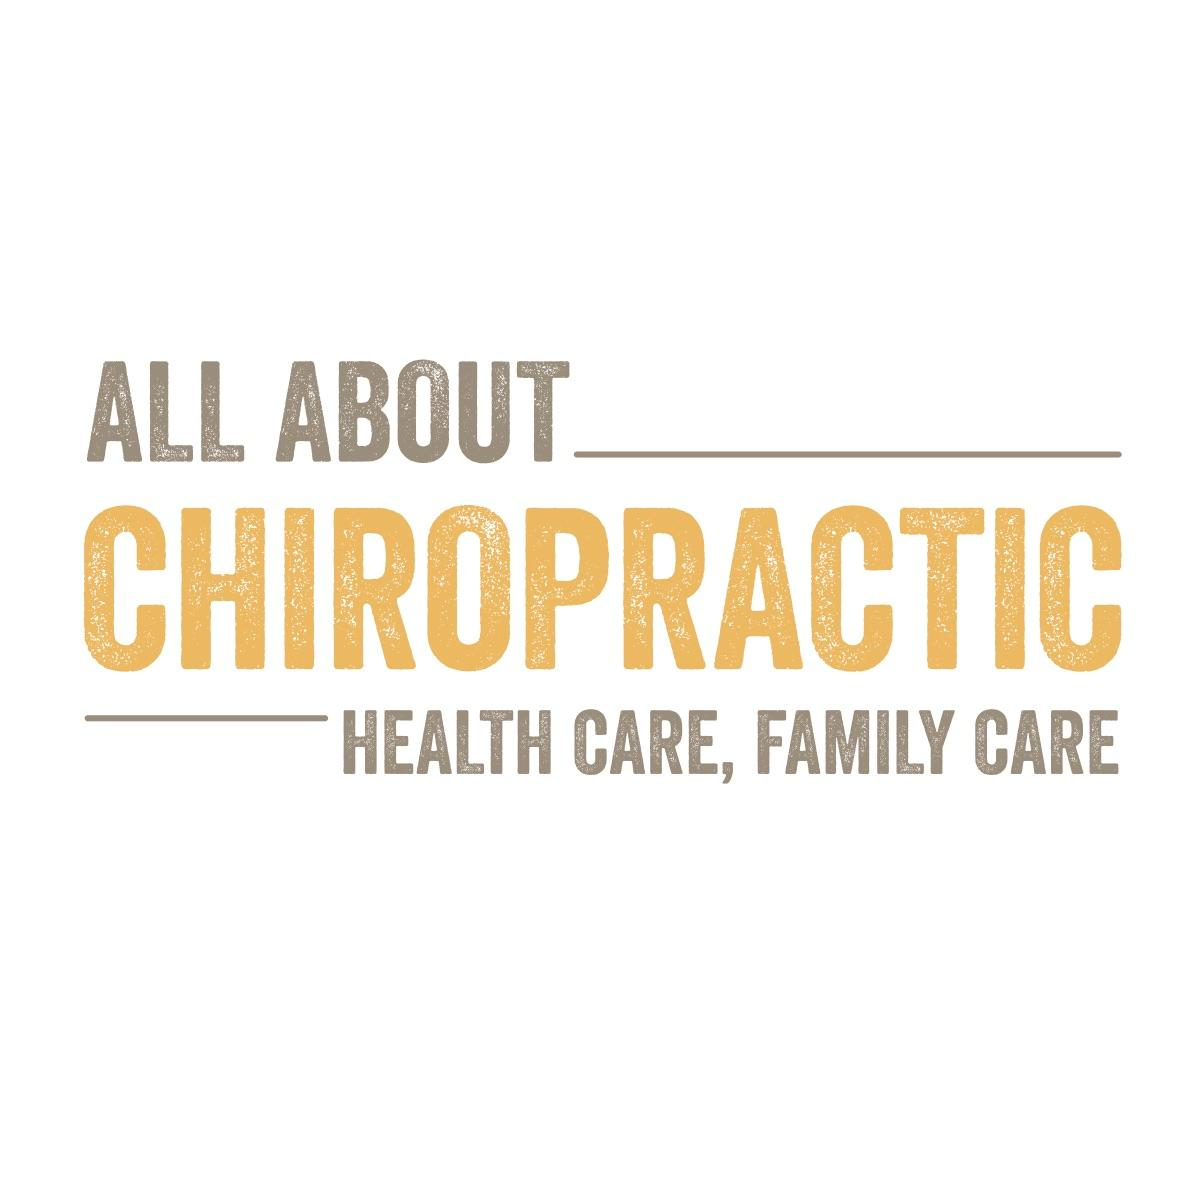 All About Chiropractic